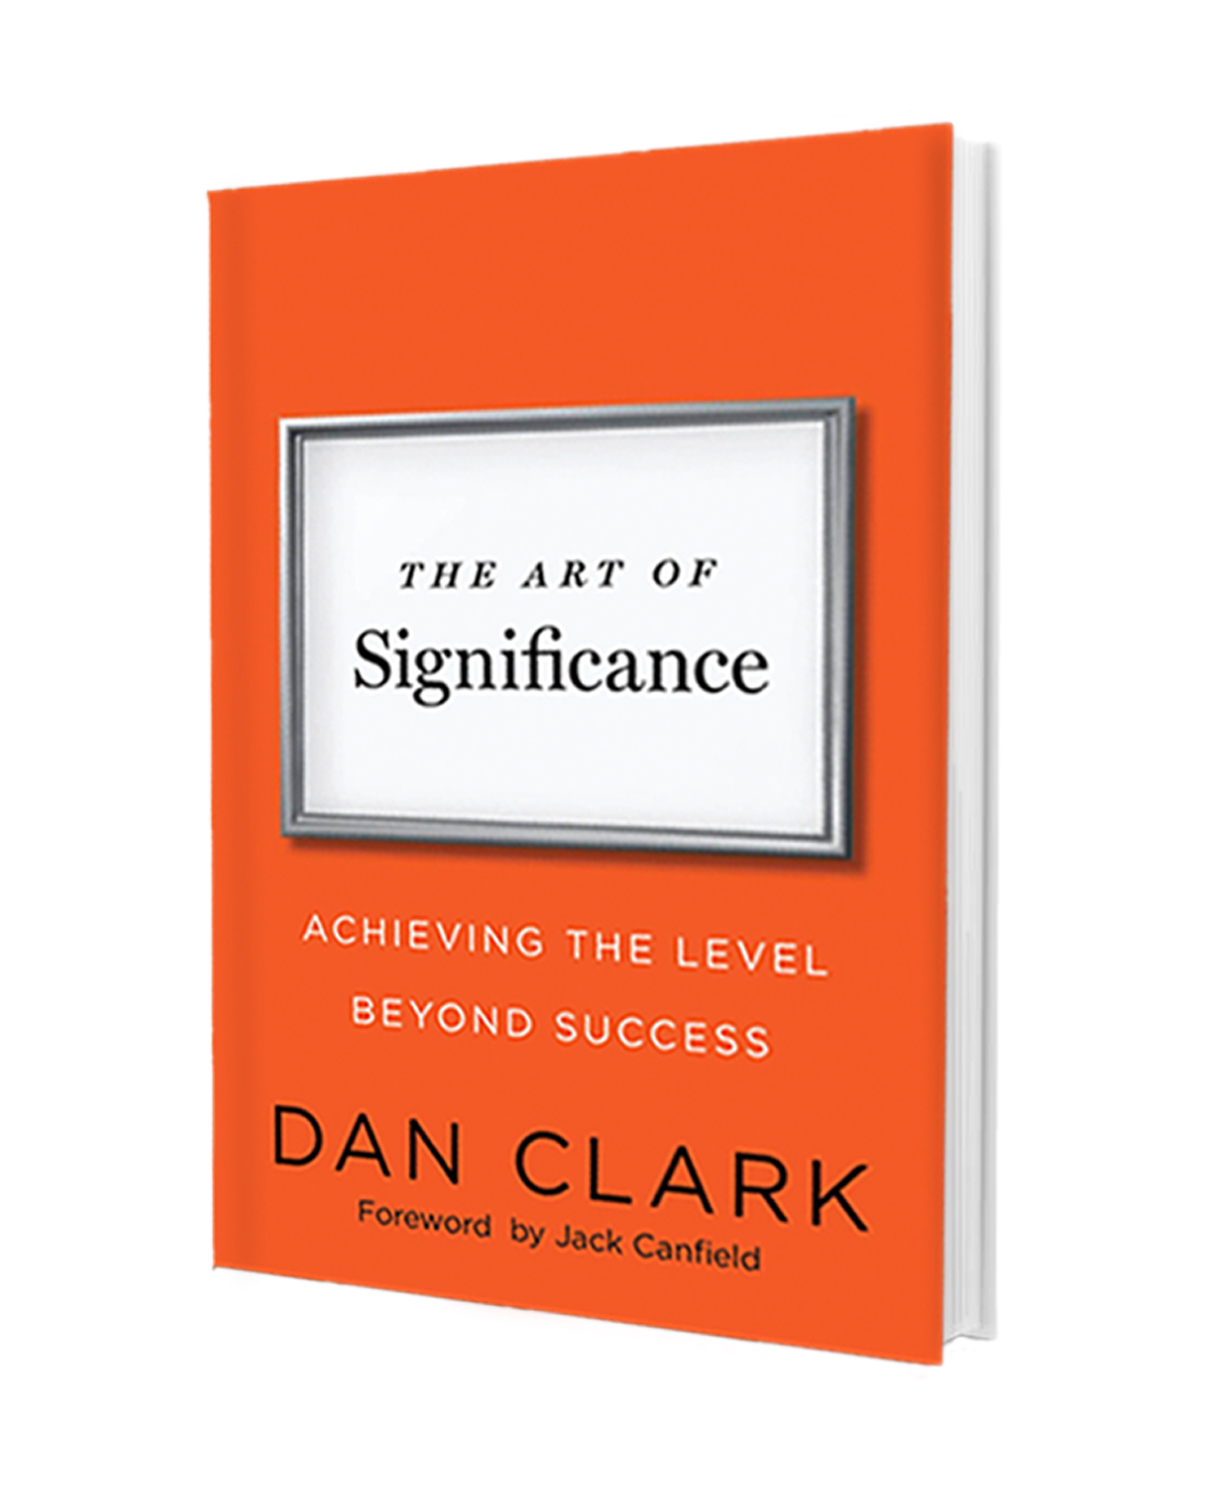 The Art of Significance - Achieving The Level Beyond Success